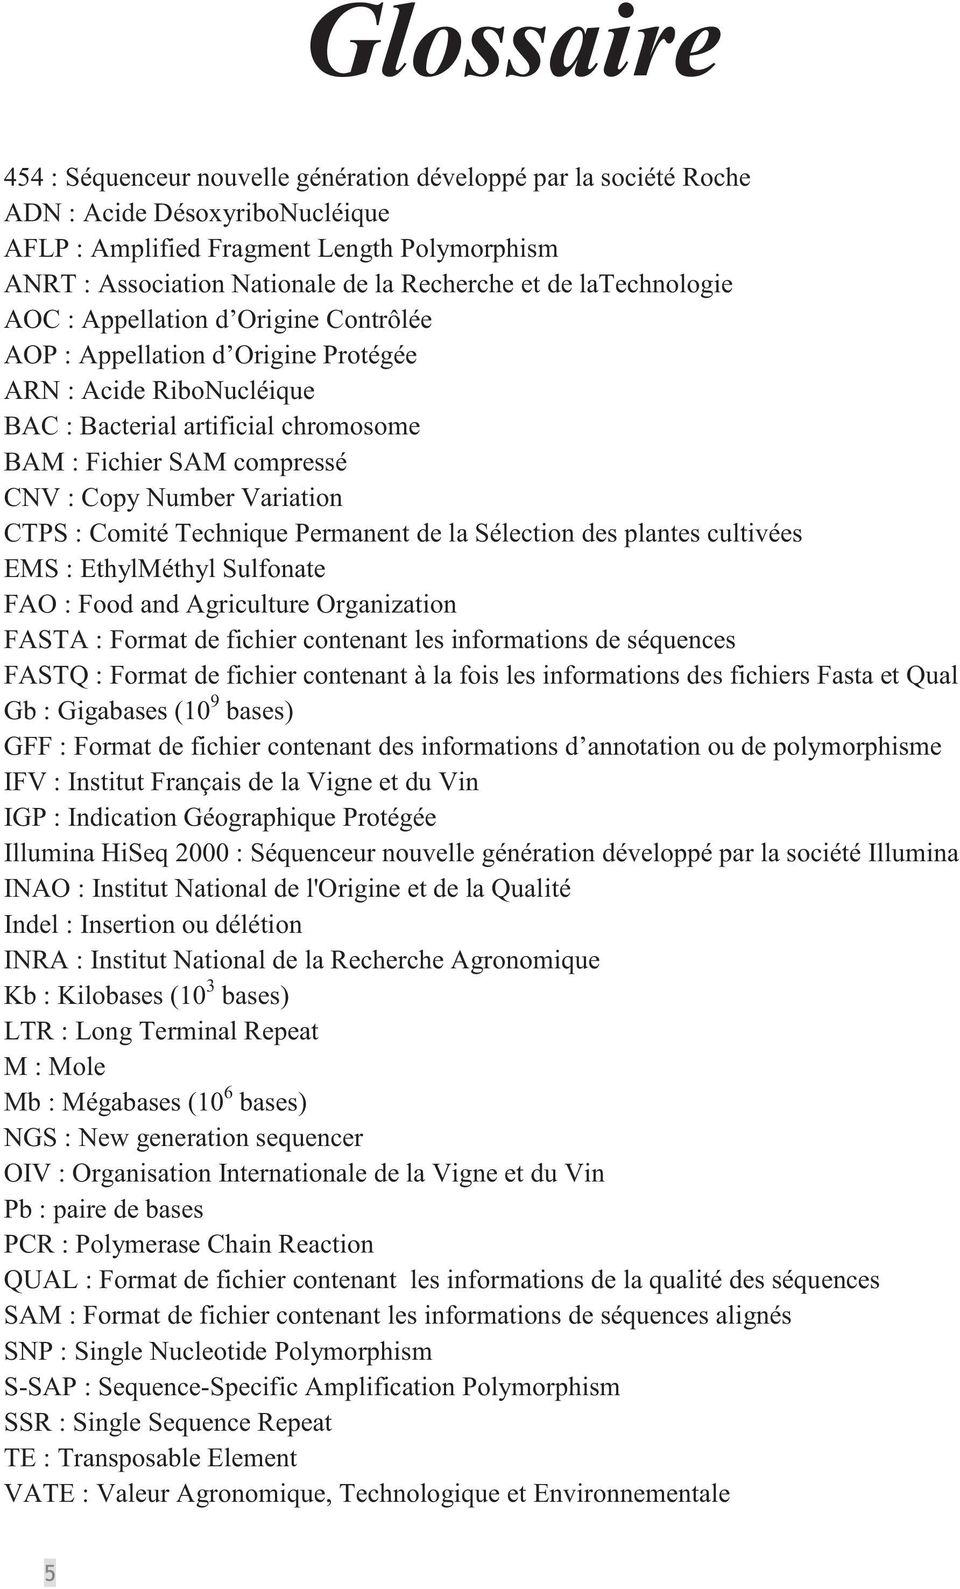 CNV : Copy Number Variation CTPS : Comité Technique Permanent de la Sélection des plantes cultivées EMS : EthylMéthyl Sulfonate FAO : Food and Agriculture Organization FASTA : Format de fichier